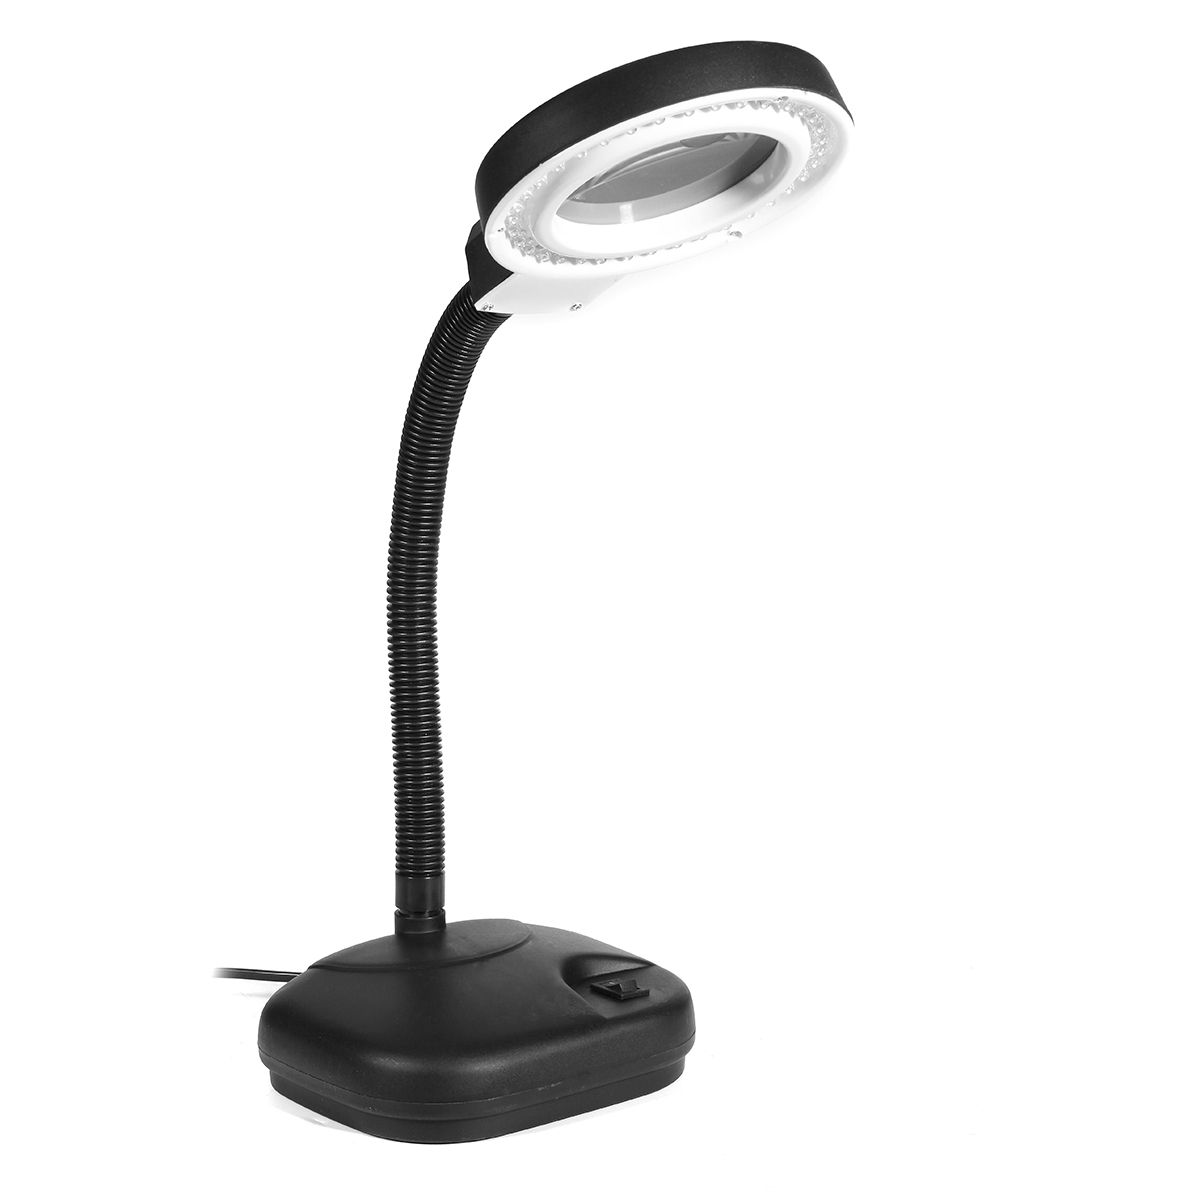 Multi-function 40 LED Desktop Magnifying Lamp 5X 10X Magnifier LED Desk Light Daylight Craft Glass Table Lamp